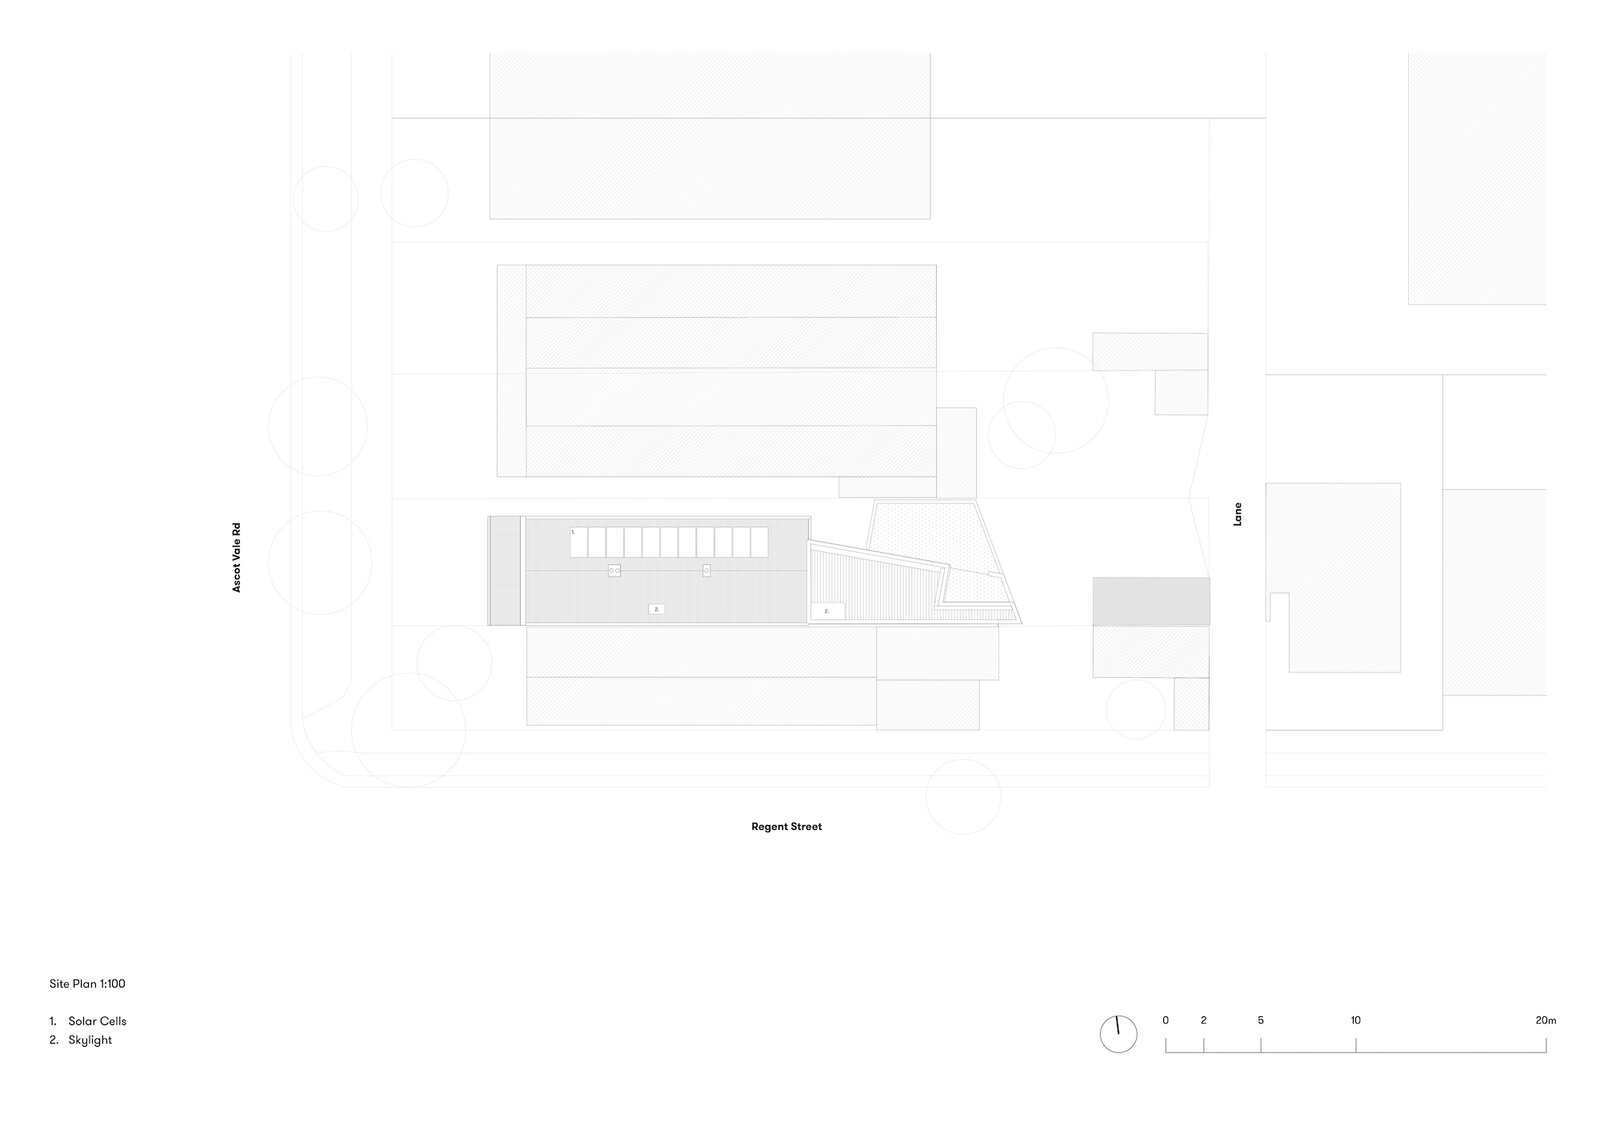 Site plan of Terrace House 1 by Dreamer